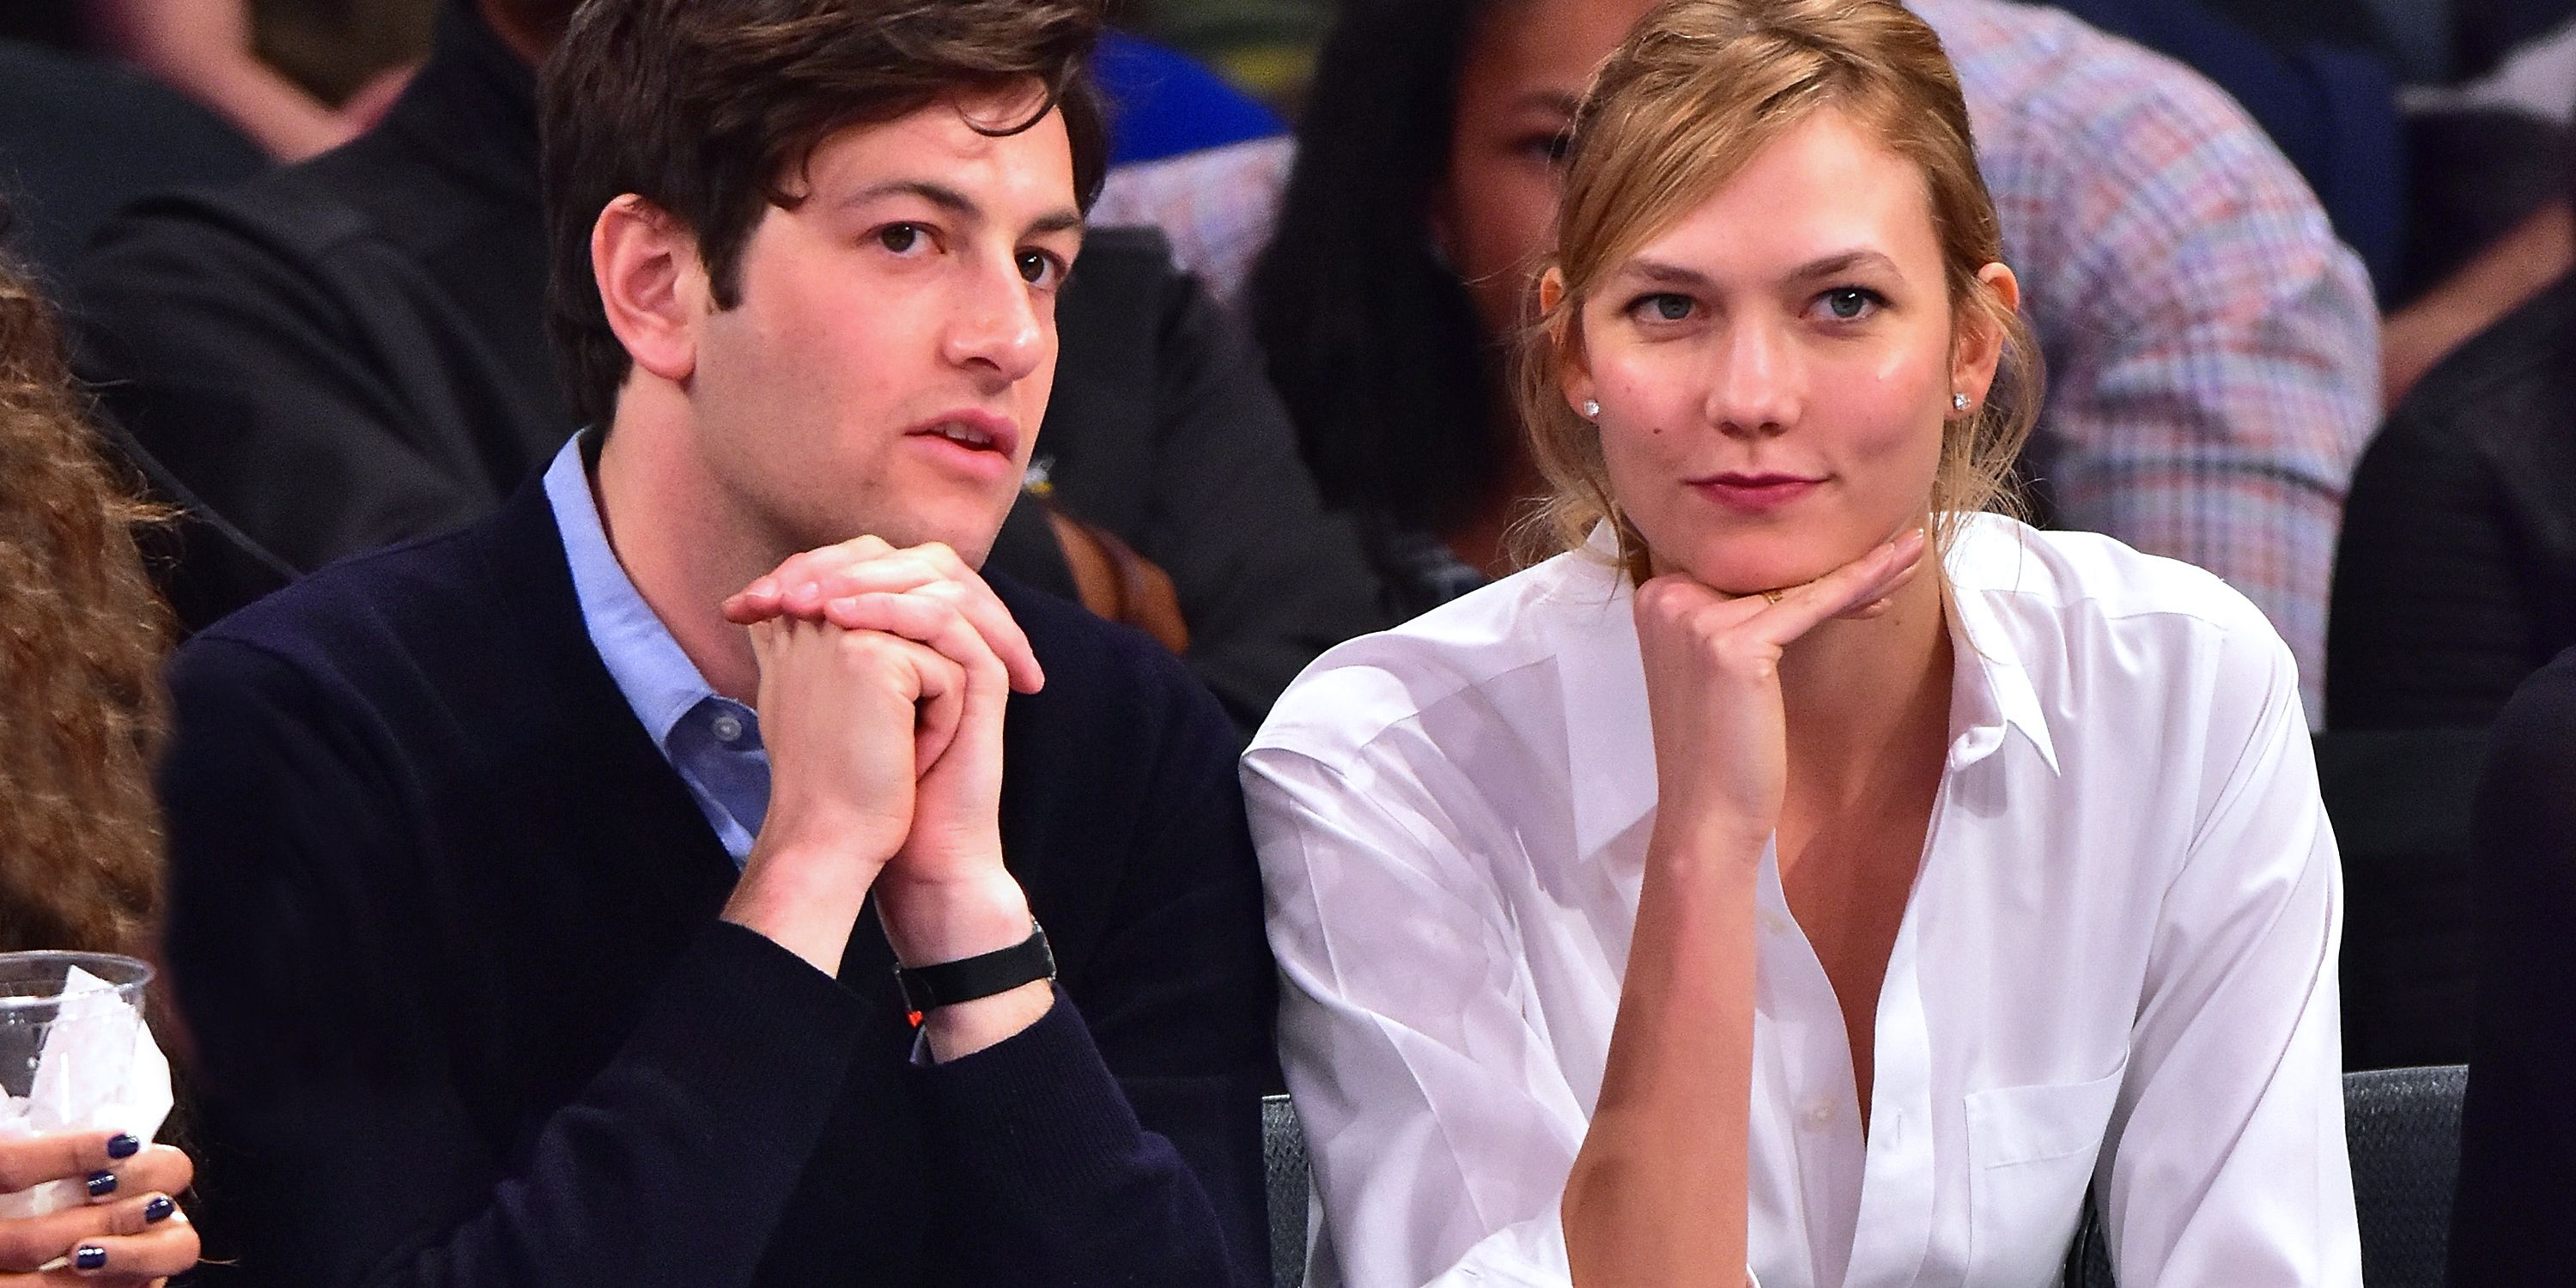 Karlie kloss dating josh kushner